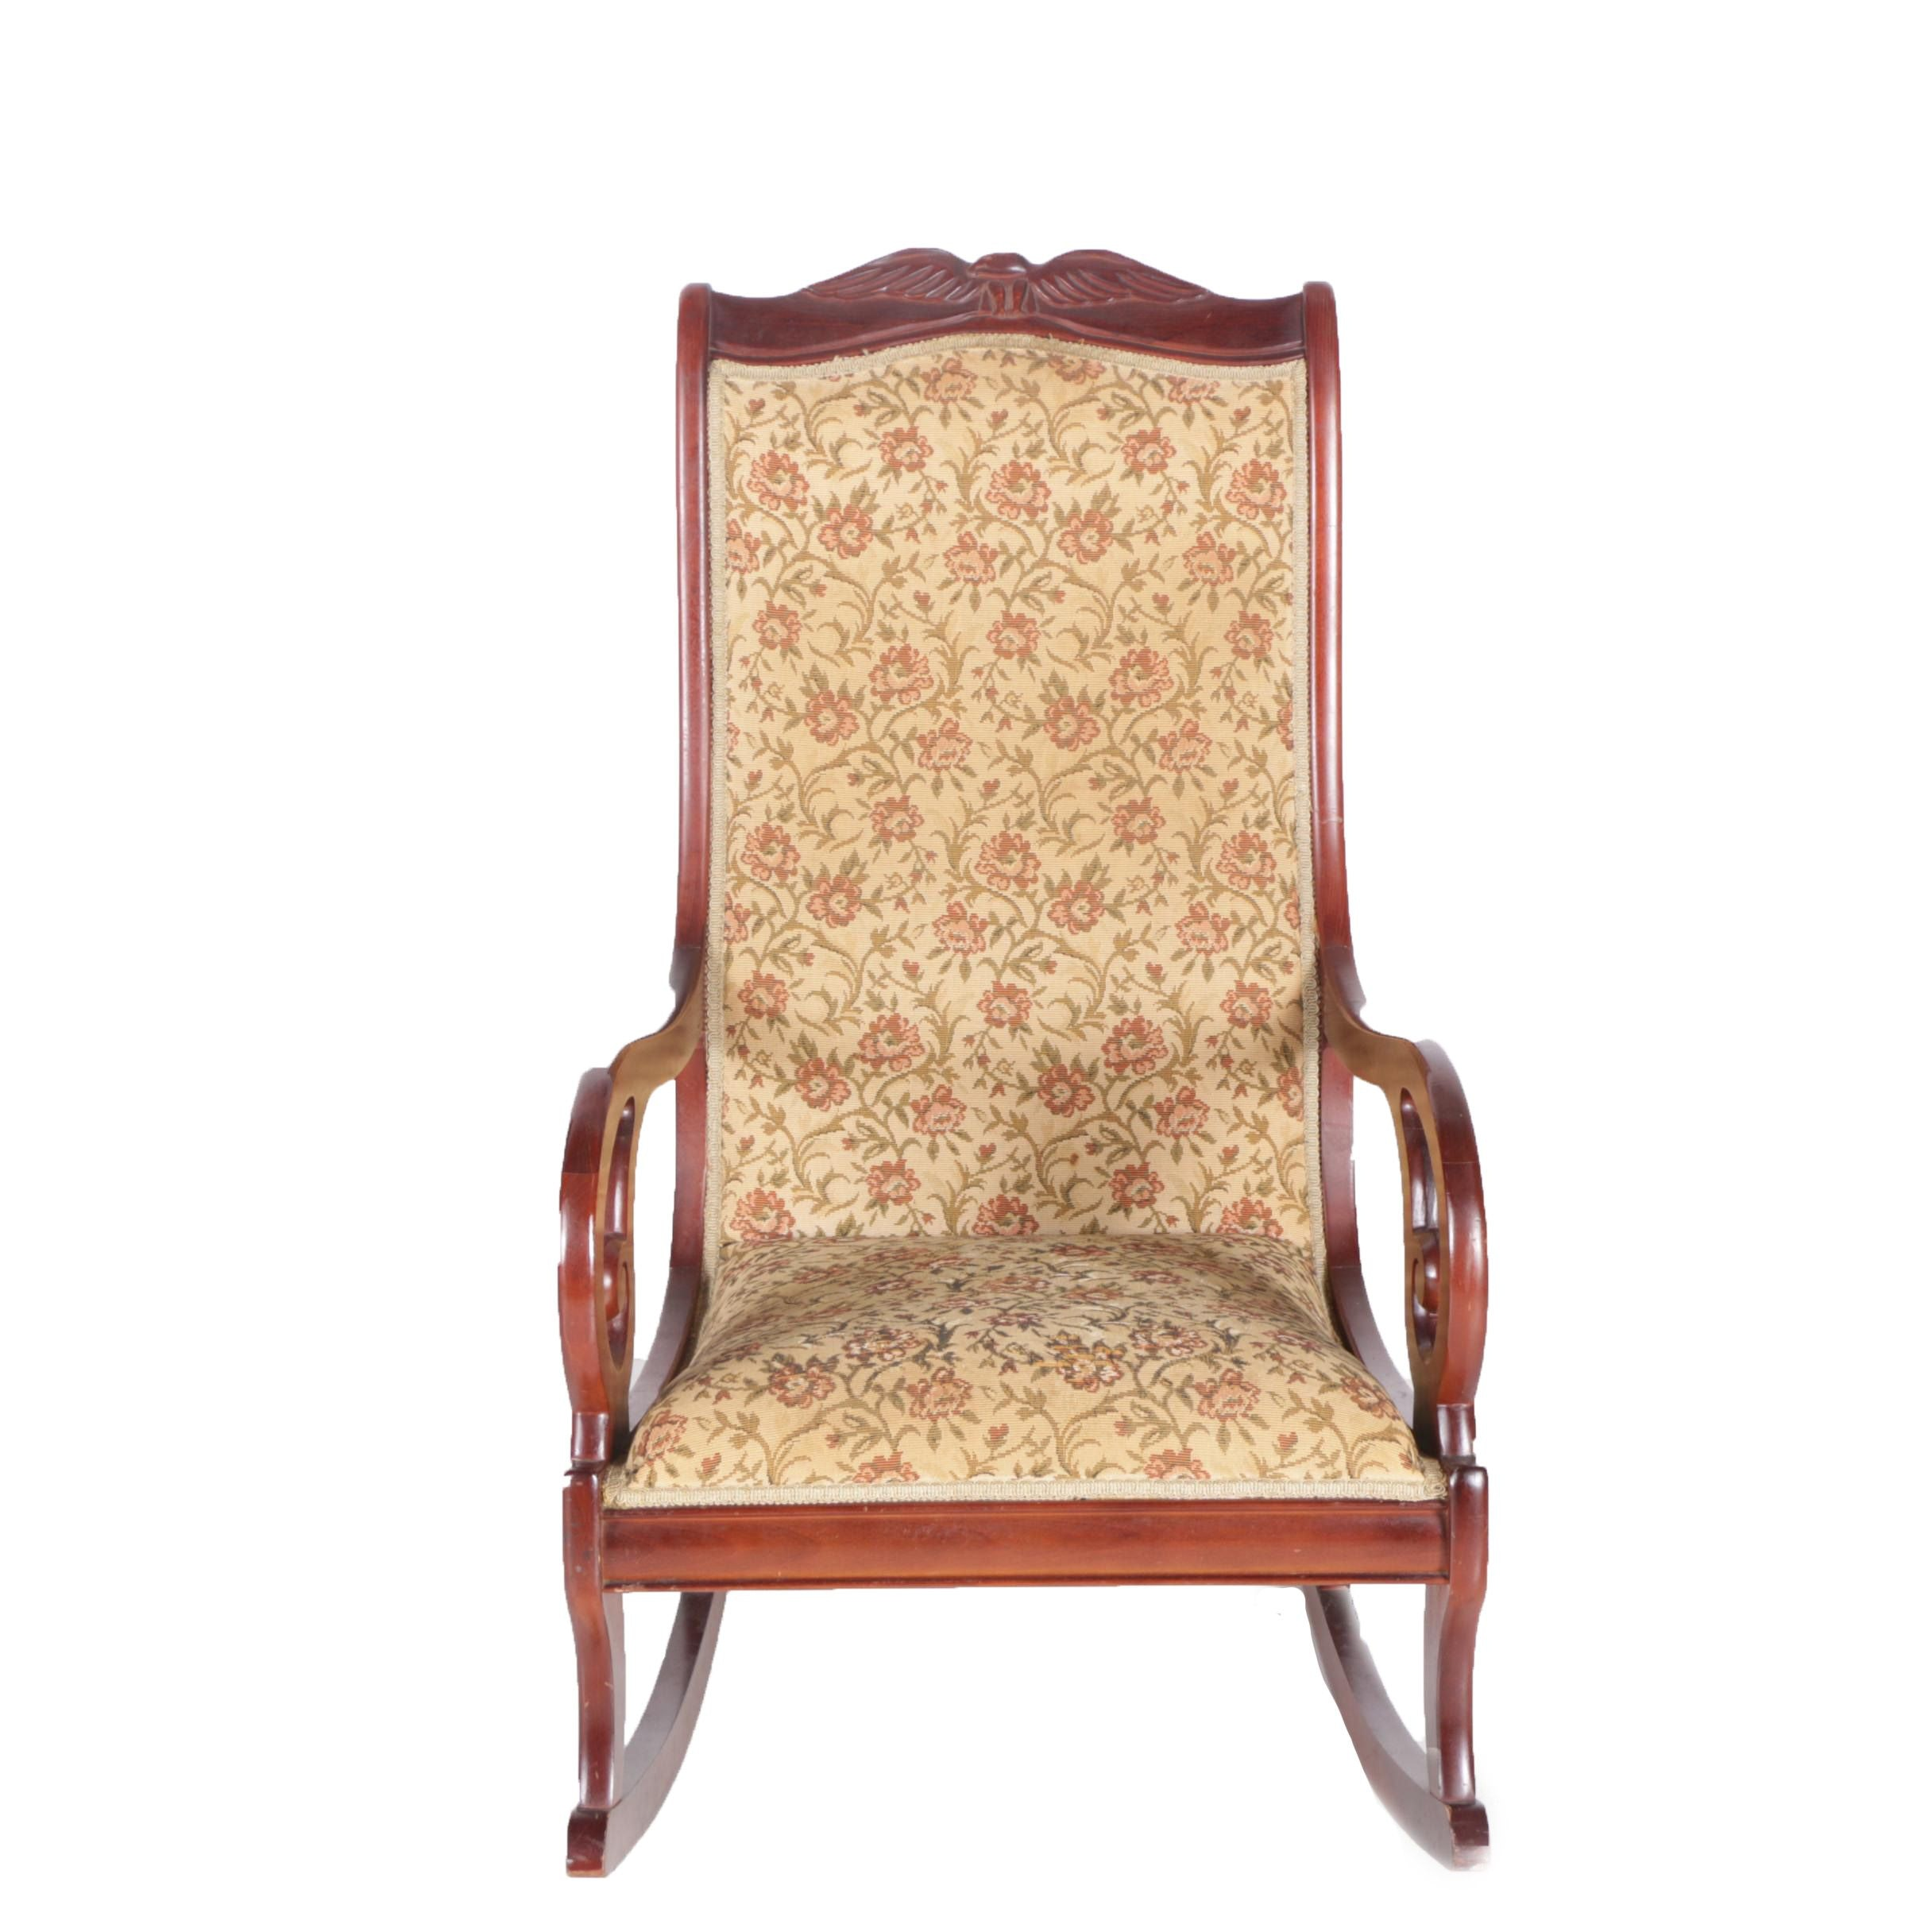 Vintage Regency Style Upholstered Rocking Chair by Statesville Chair Company